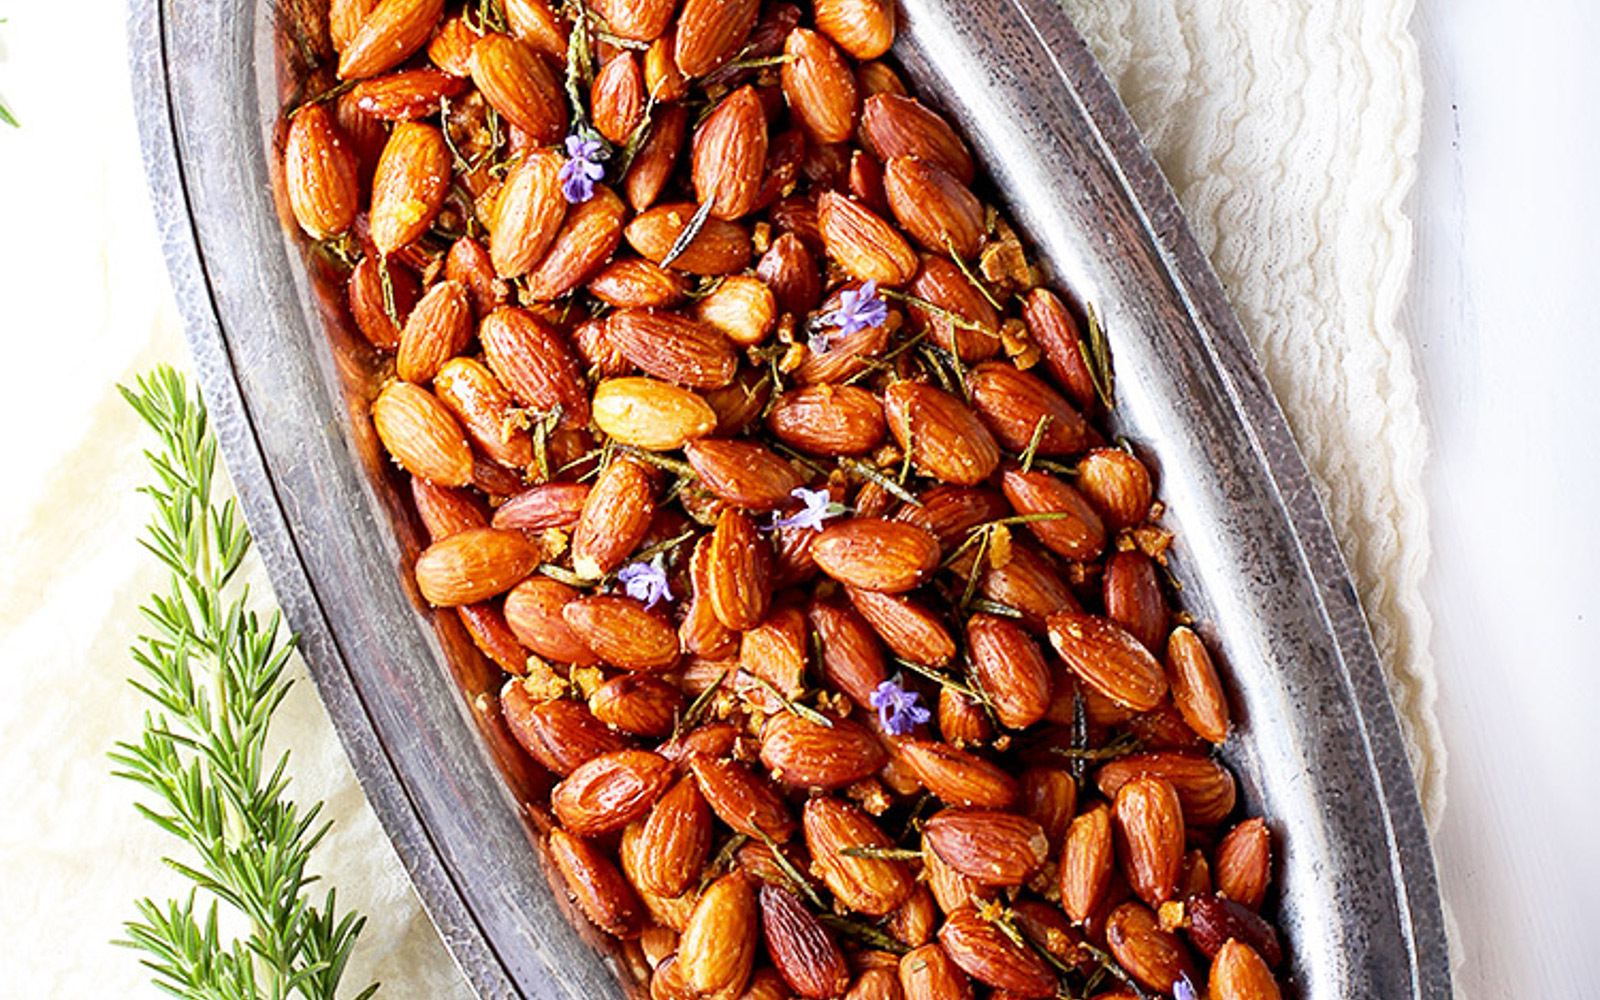 Rosemary and Garlic Almonds